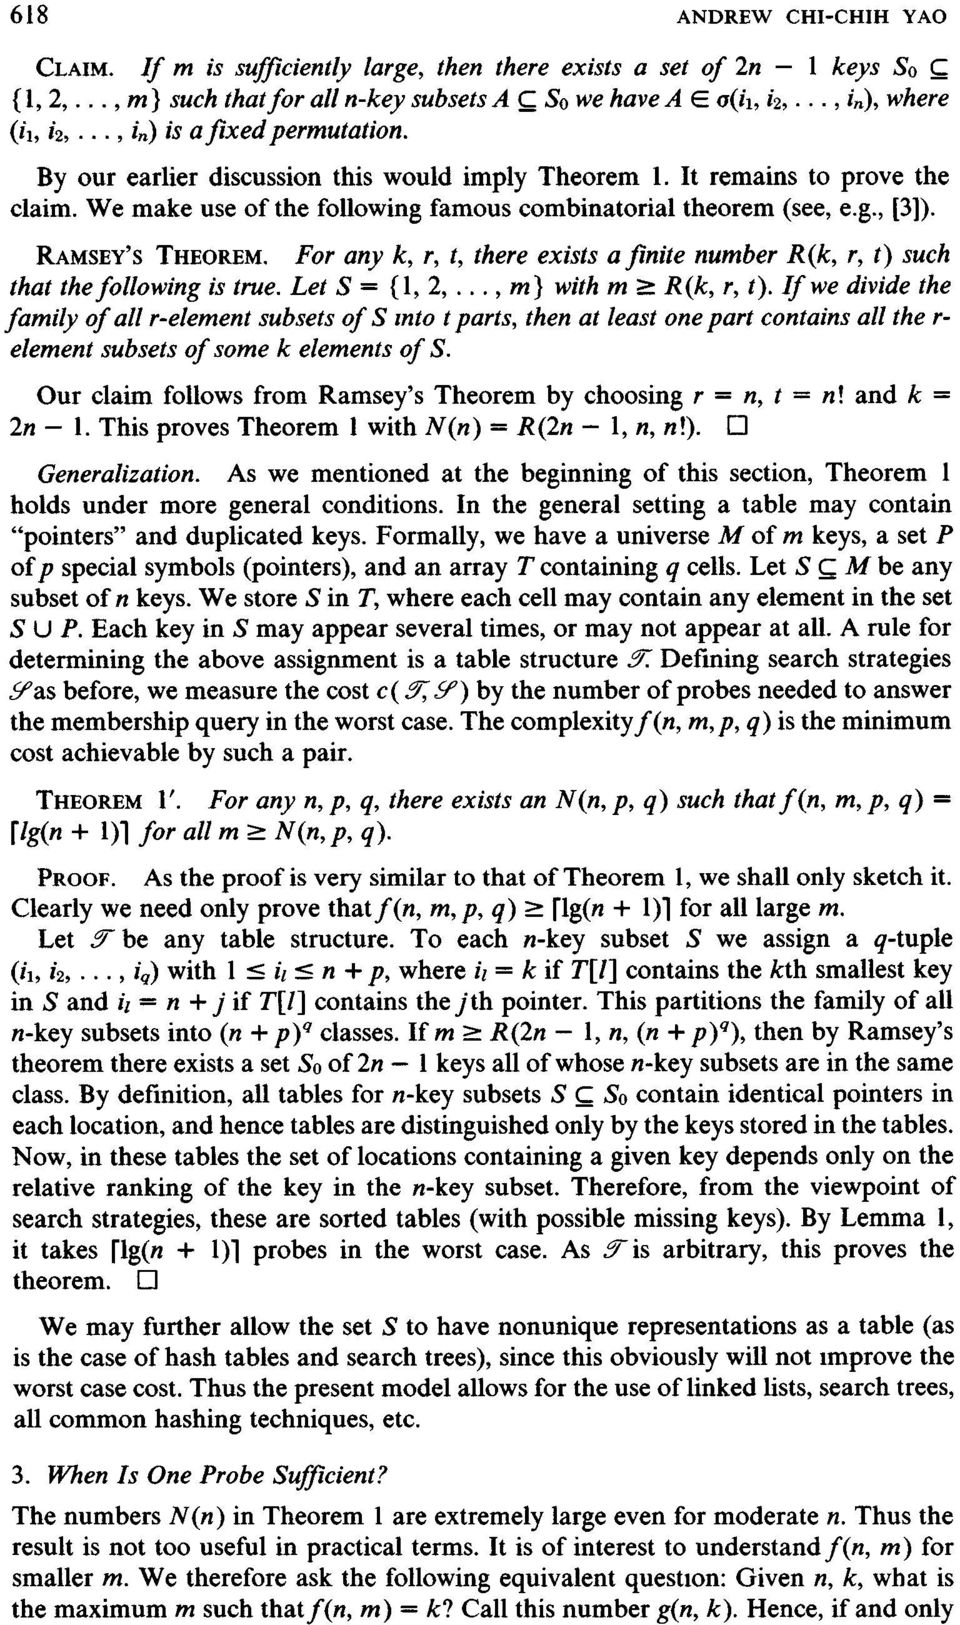 RAMSEY'S THEOREM. For any k, r, t, there exists a finite number R(k, r, t) such that the following is true. Let S = (1, 2... m) with m _> R(k, r, t).